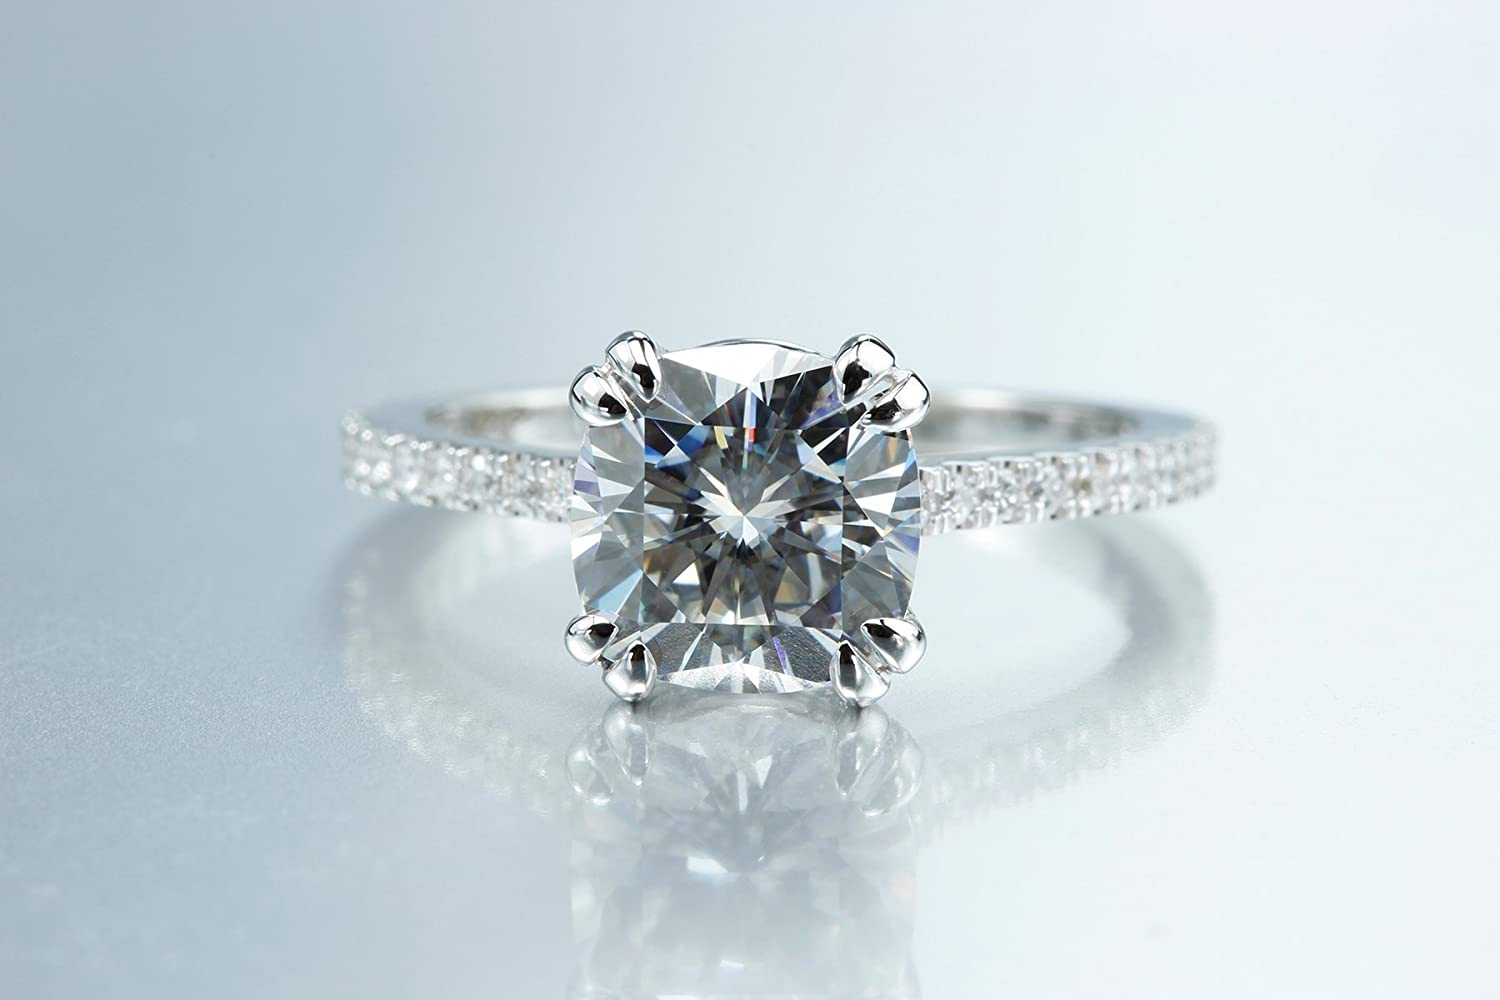 Moissanite Diamond - Know Information About